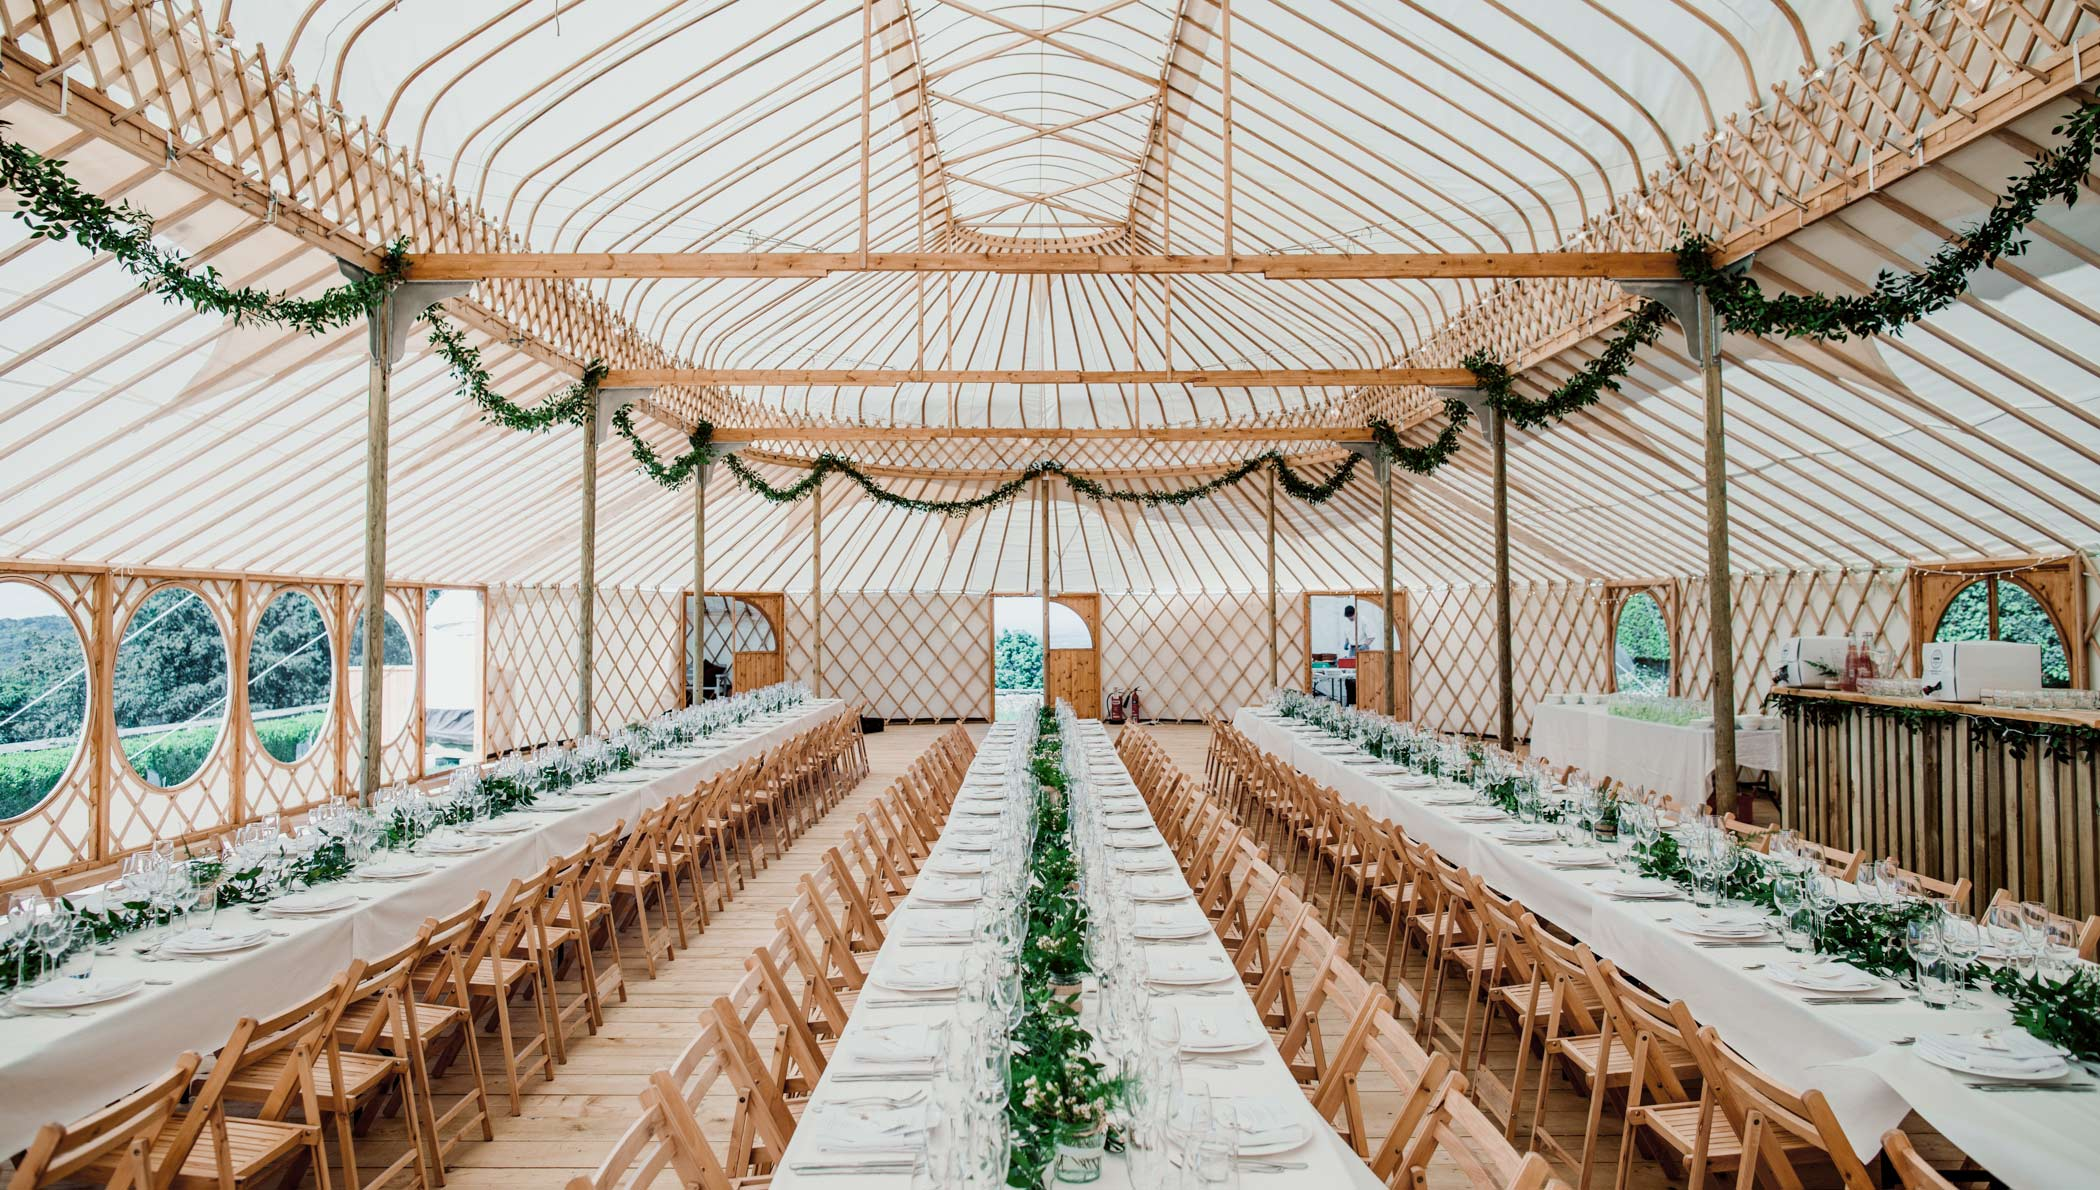 The spectacular Palace Yurt can seat up to 250 reception guests